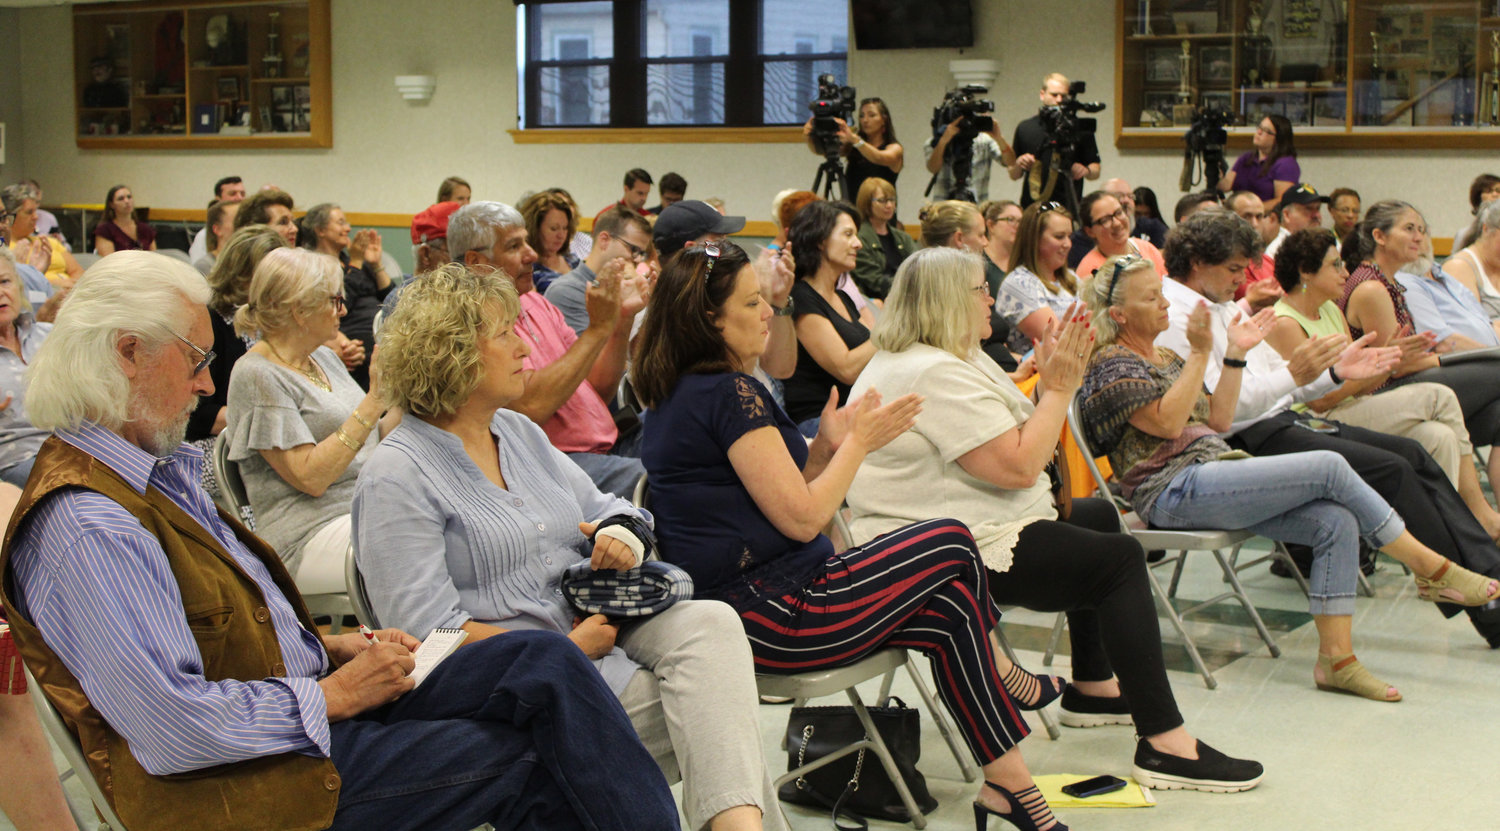 Some audience members applaud during Congressman Scott Perry's town hall at the Hummelstown Fire Department on July 30.